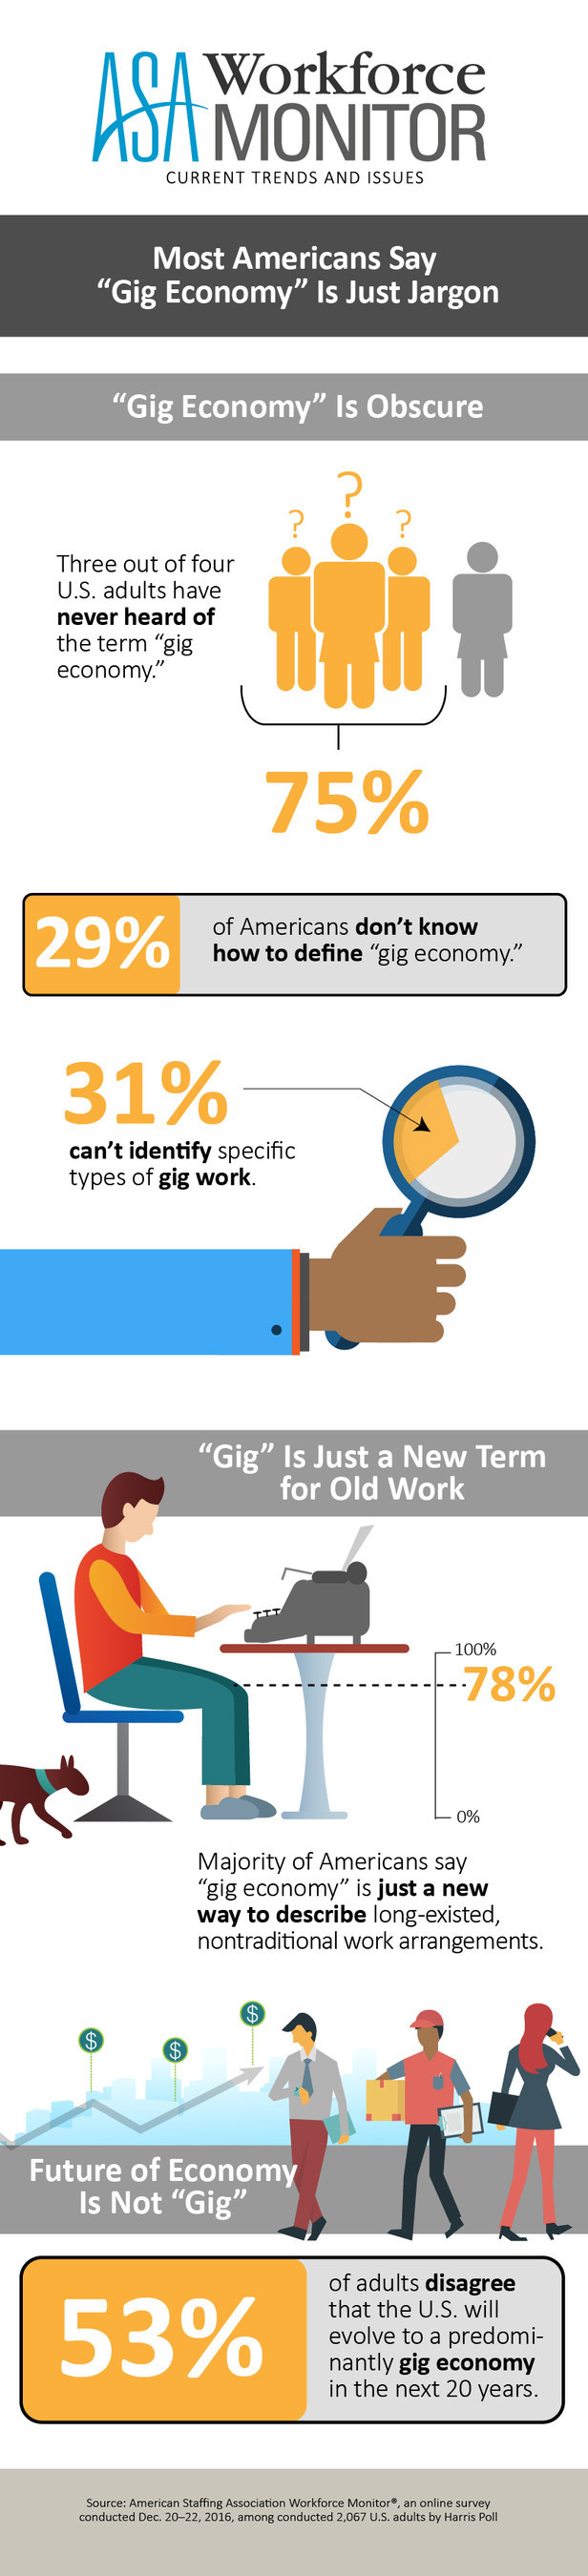 """Most Americans Say """"Gig Economy"""" Is Just Jargon"""